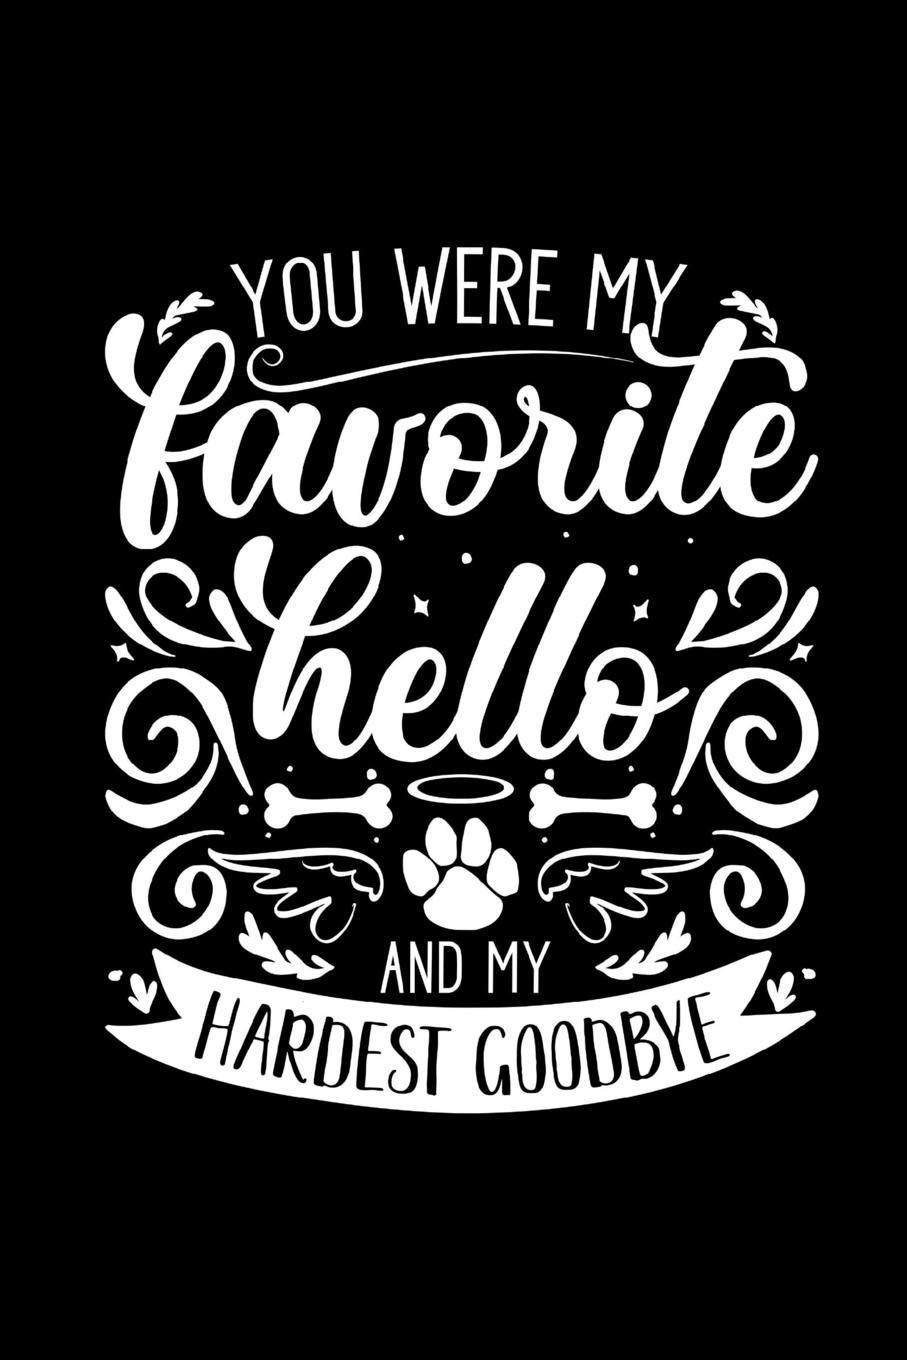 Buy You Are My Favorite Hello And My Hardest Goodbye Funny Dog Lover S Journal This Is A 6x9 100 Page Diary To Write Things In Makes A Great New Dog Or